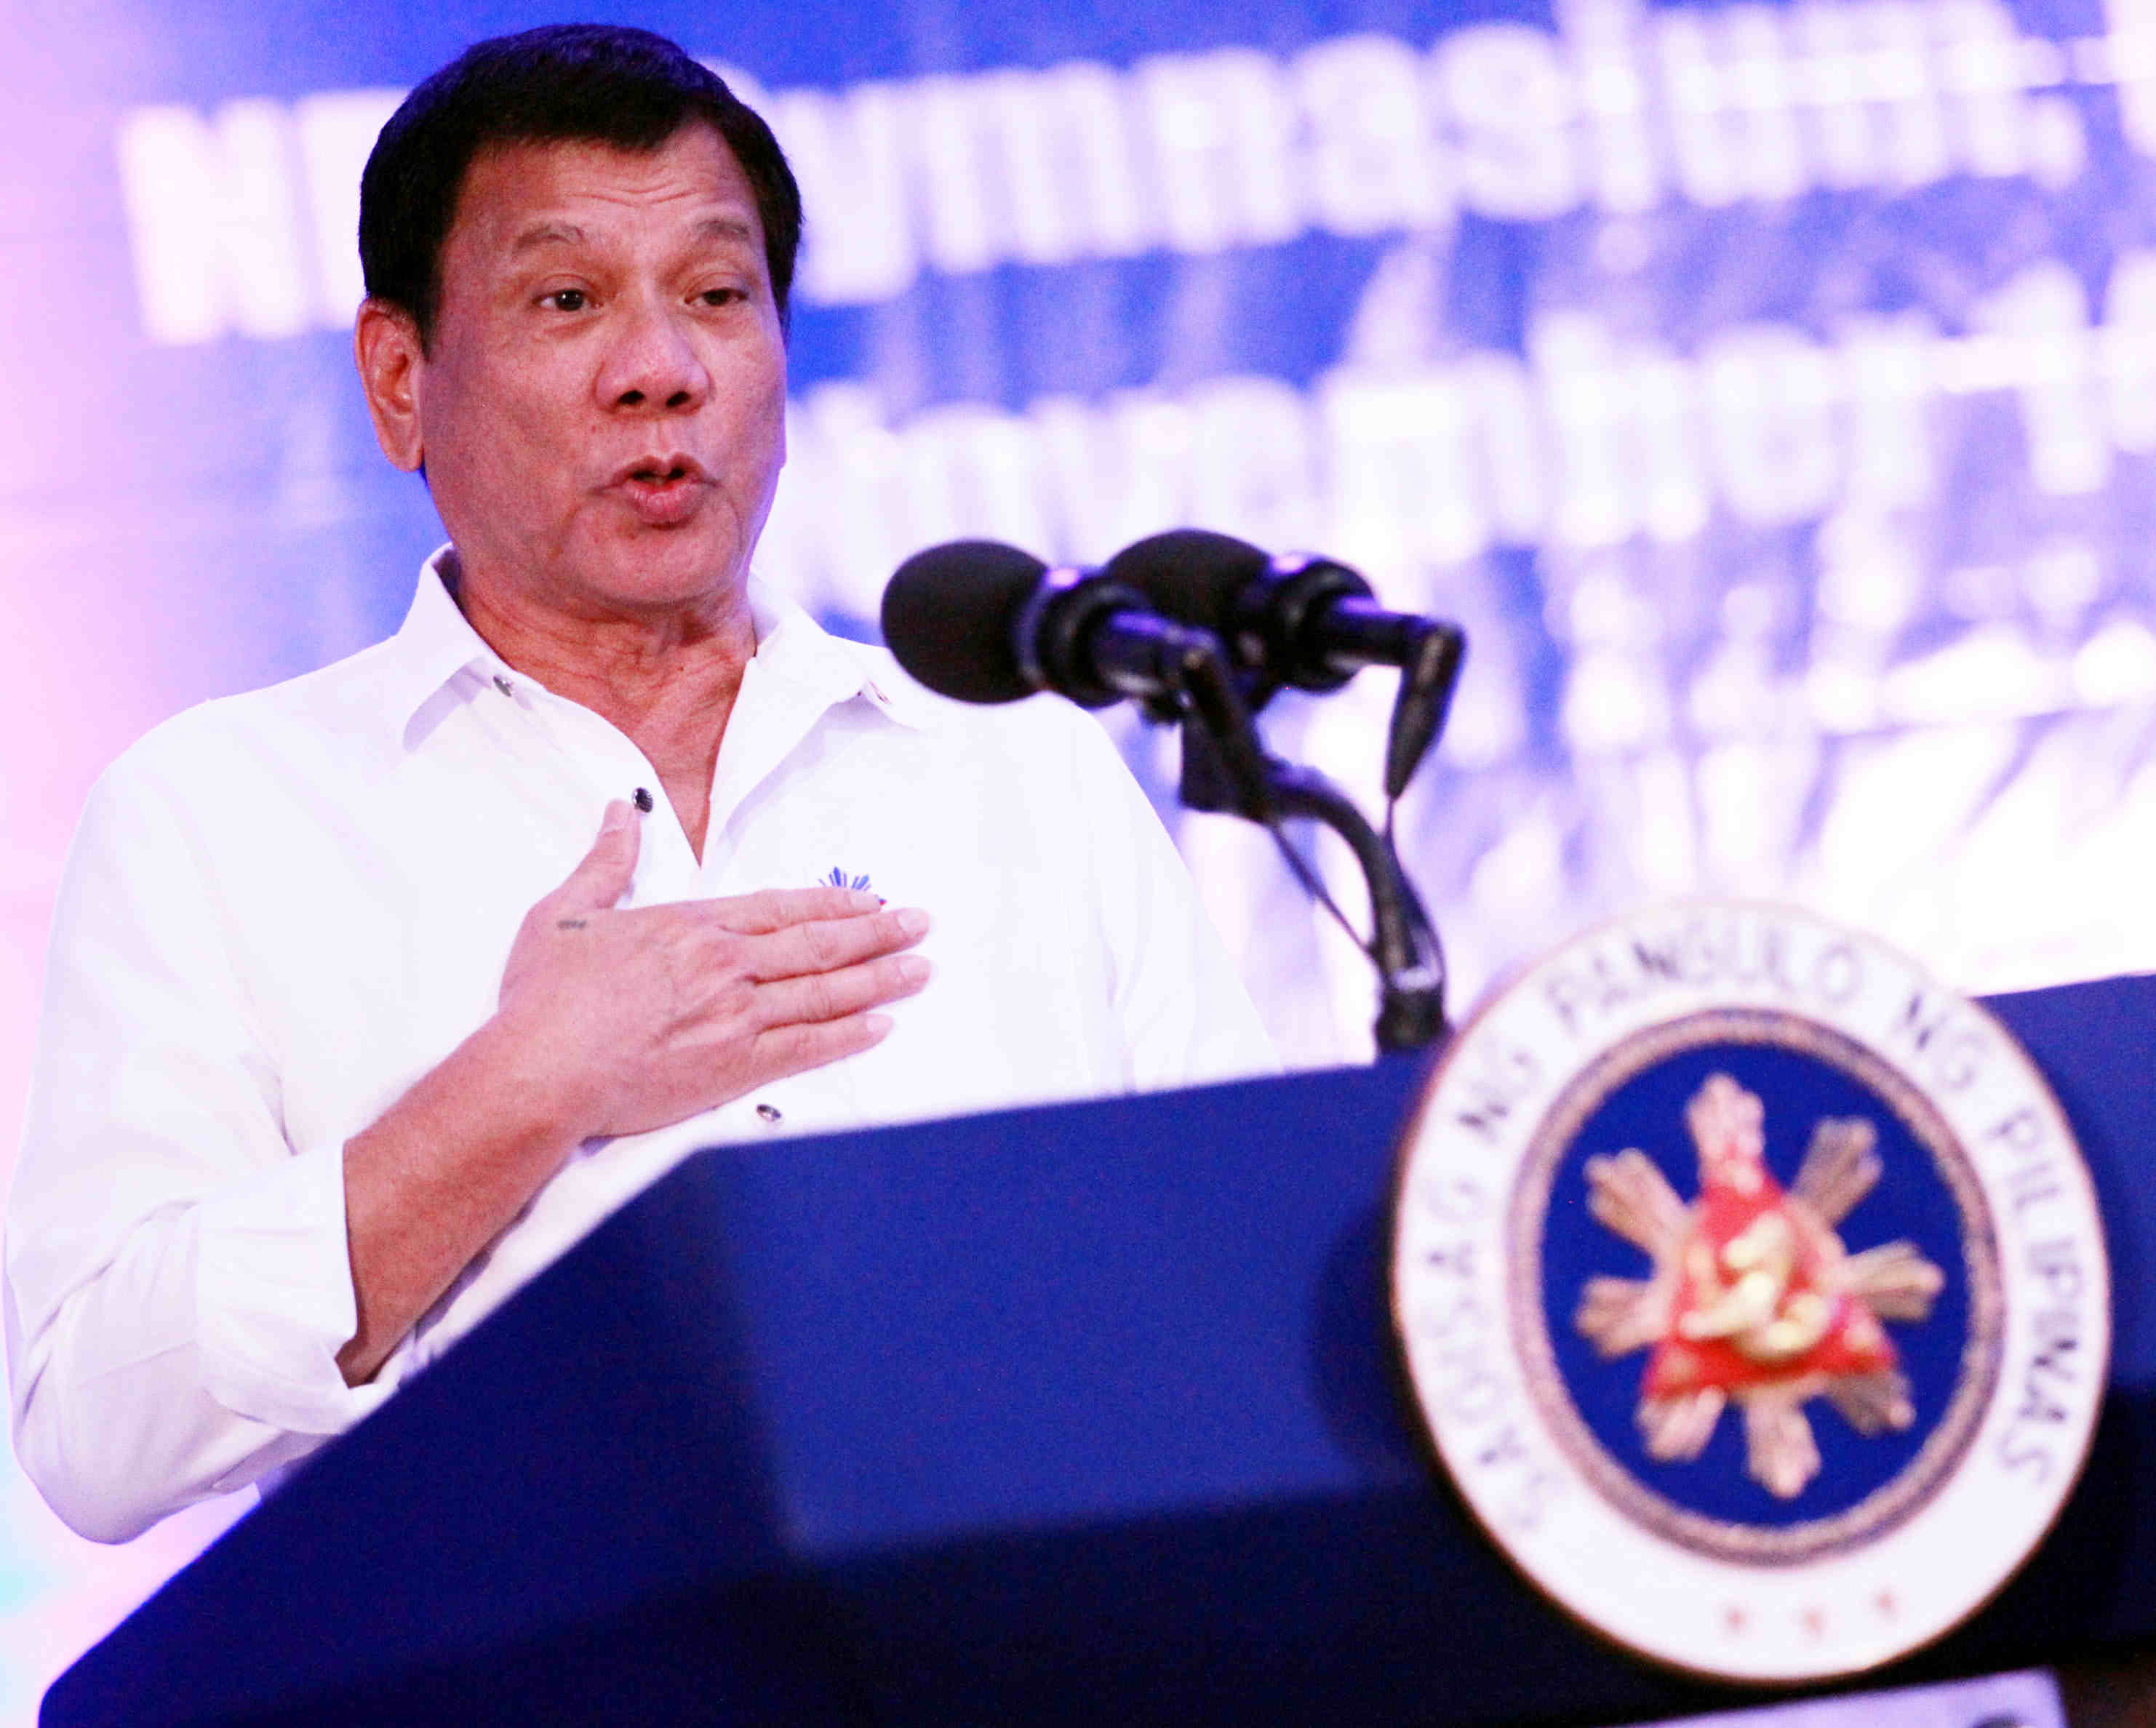 President Rodrigo R. Duterte clarifies that law enforcers can neutralize an illegal drug suspect only if the latter displays a violent resistance during his keynote speech on the 89th founding anniversary of the National Bureau of Investigation at the NBI Gymnasium in Manila on Monday (Nov. 14, 2016). (MNS photo)